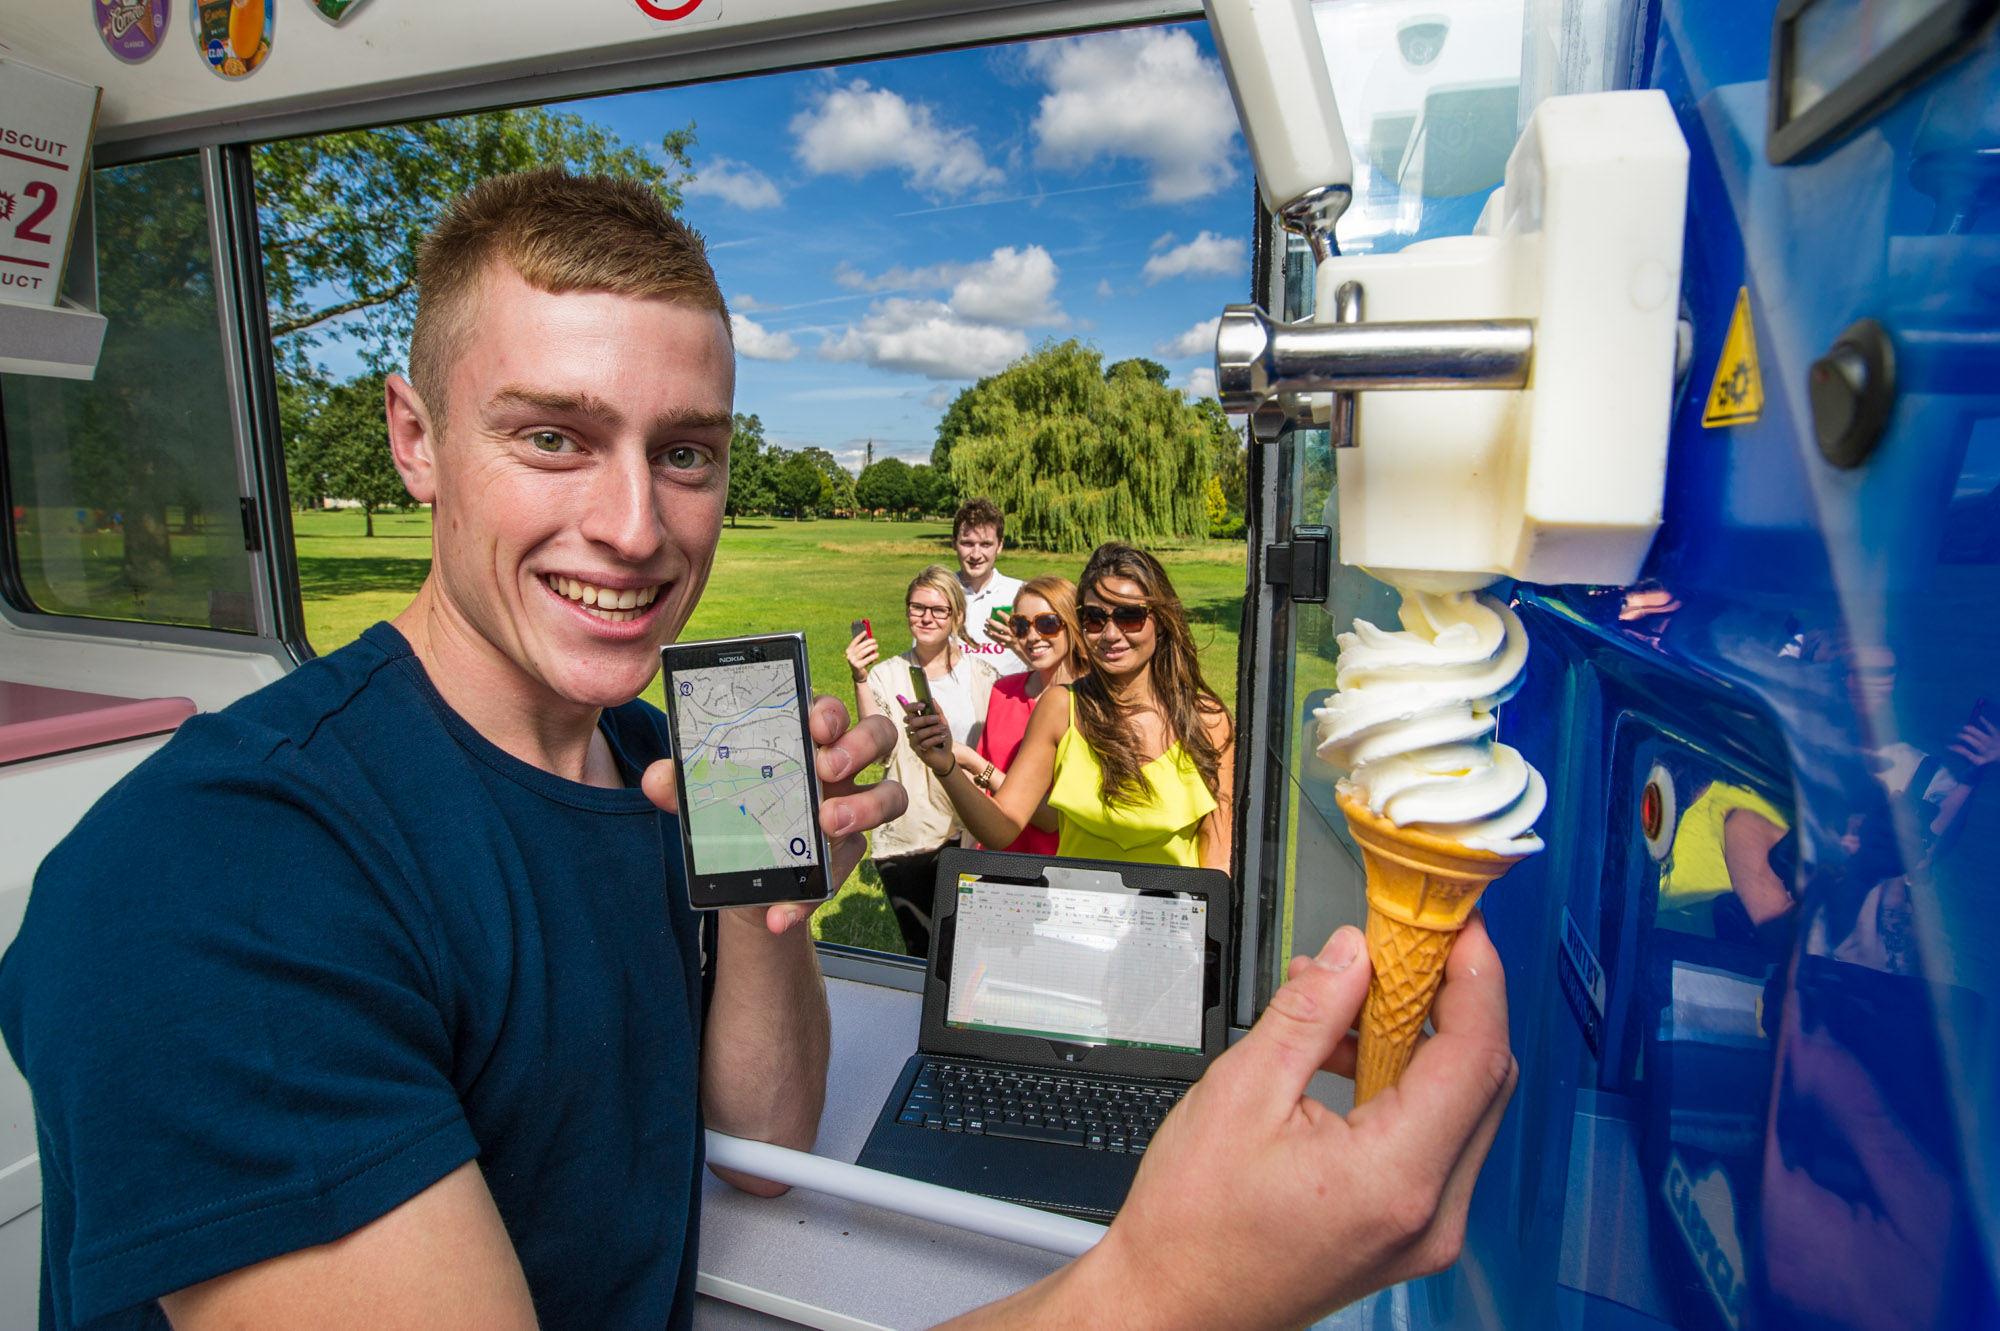 Britain has unveiled its most high-tech fleet of ice cream vans